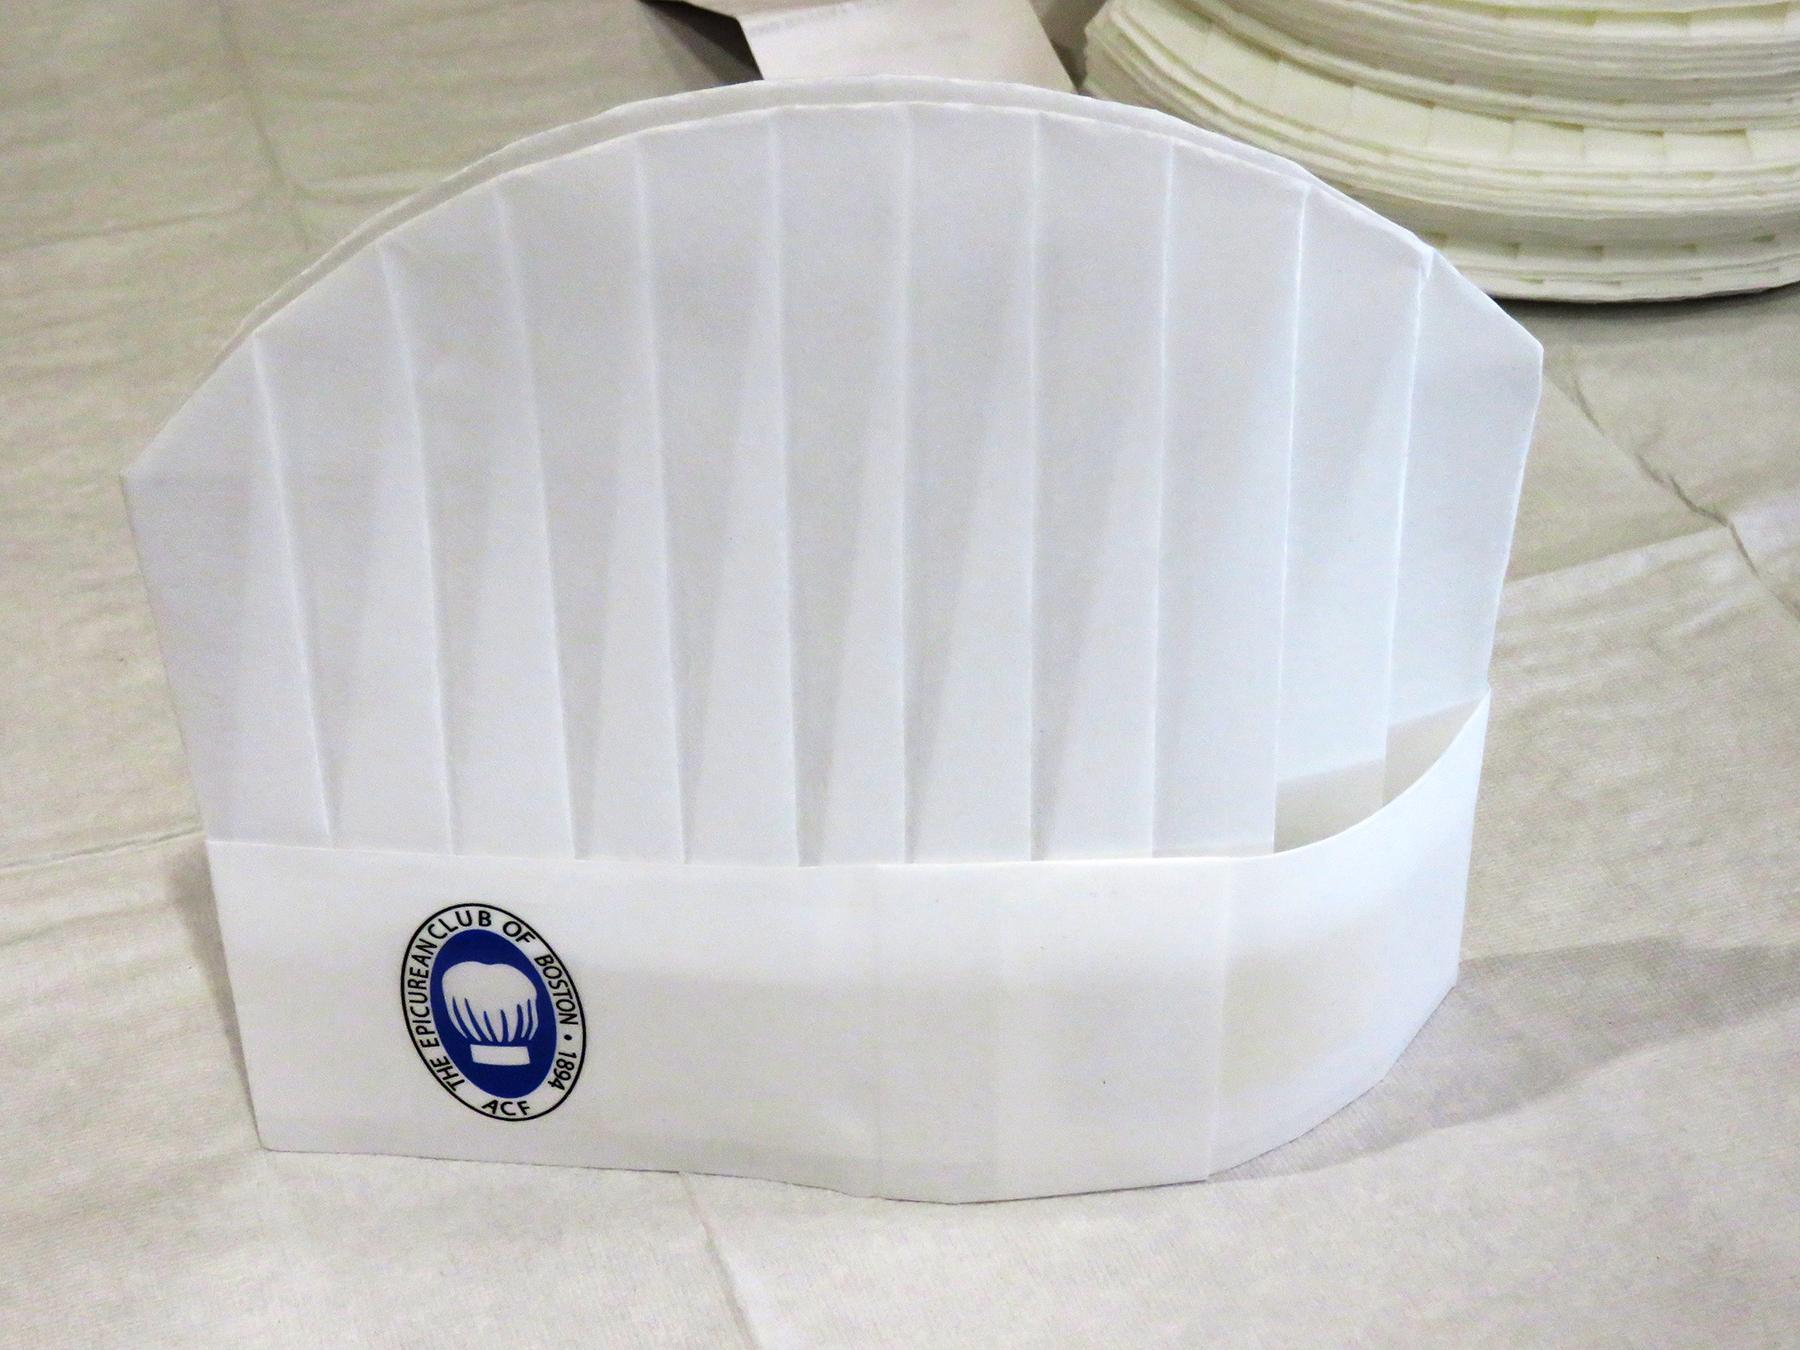 A chef's hat with the Epicurean Club of Boston logo